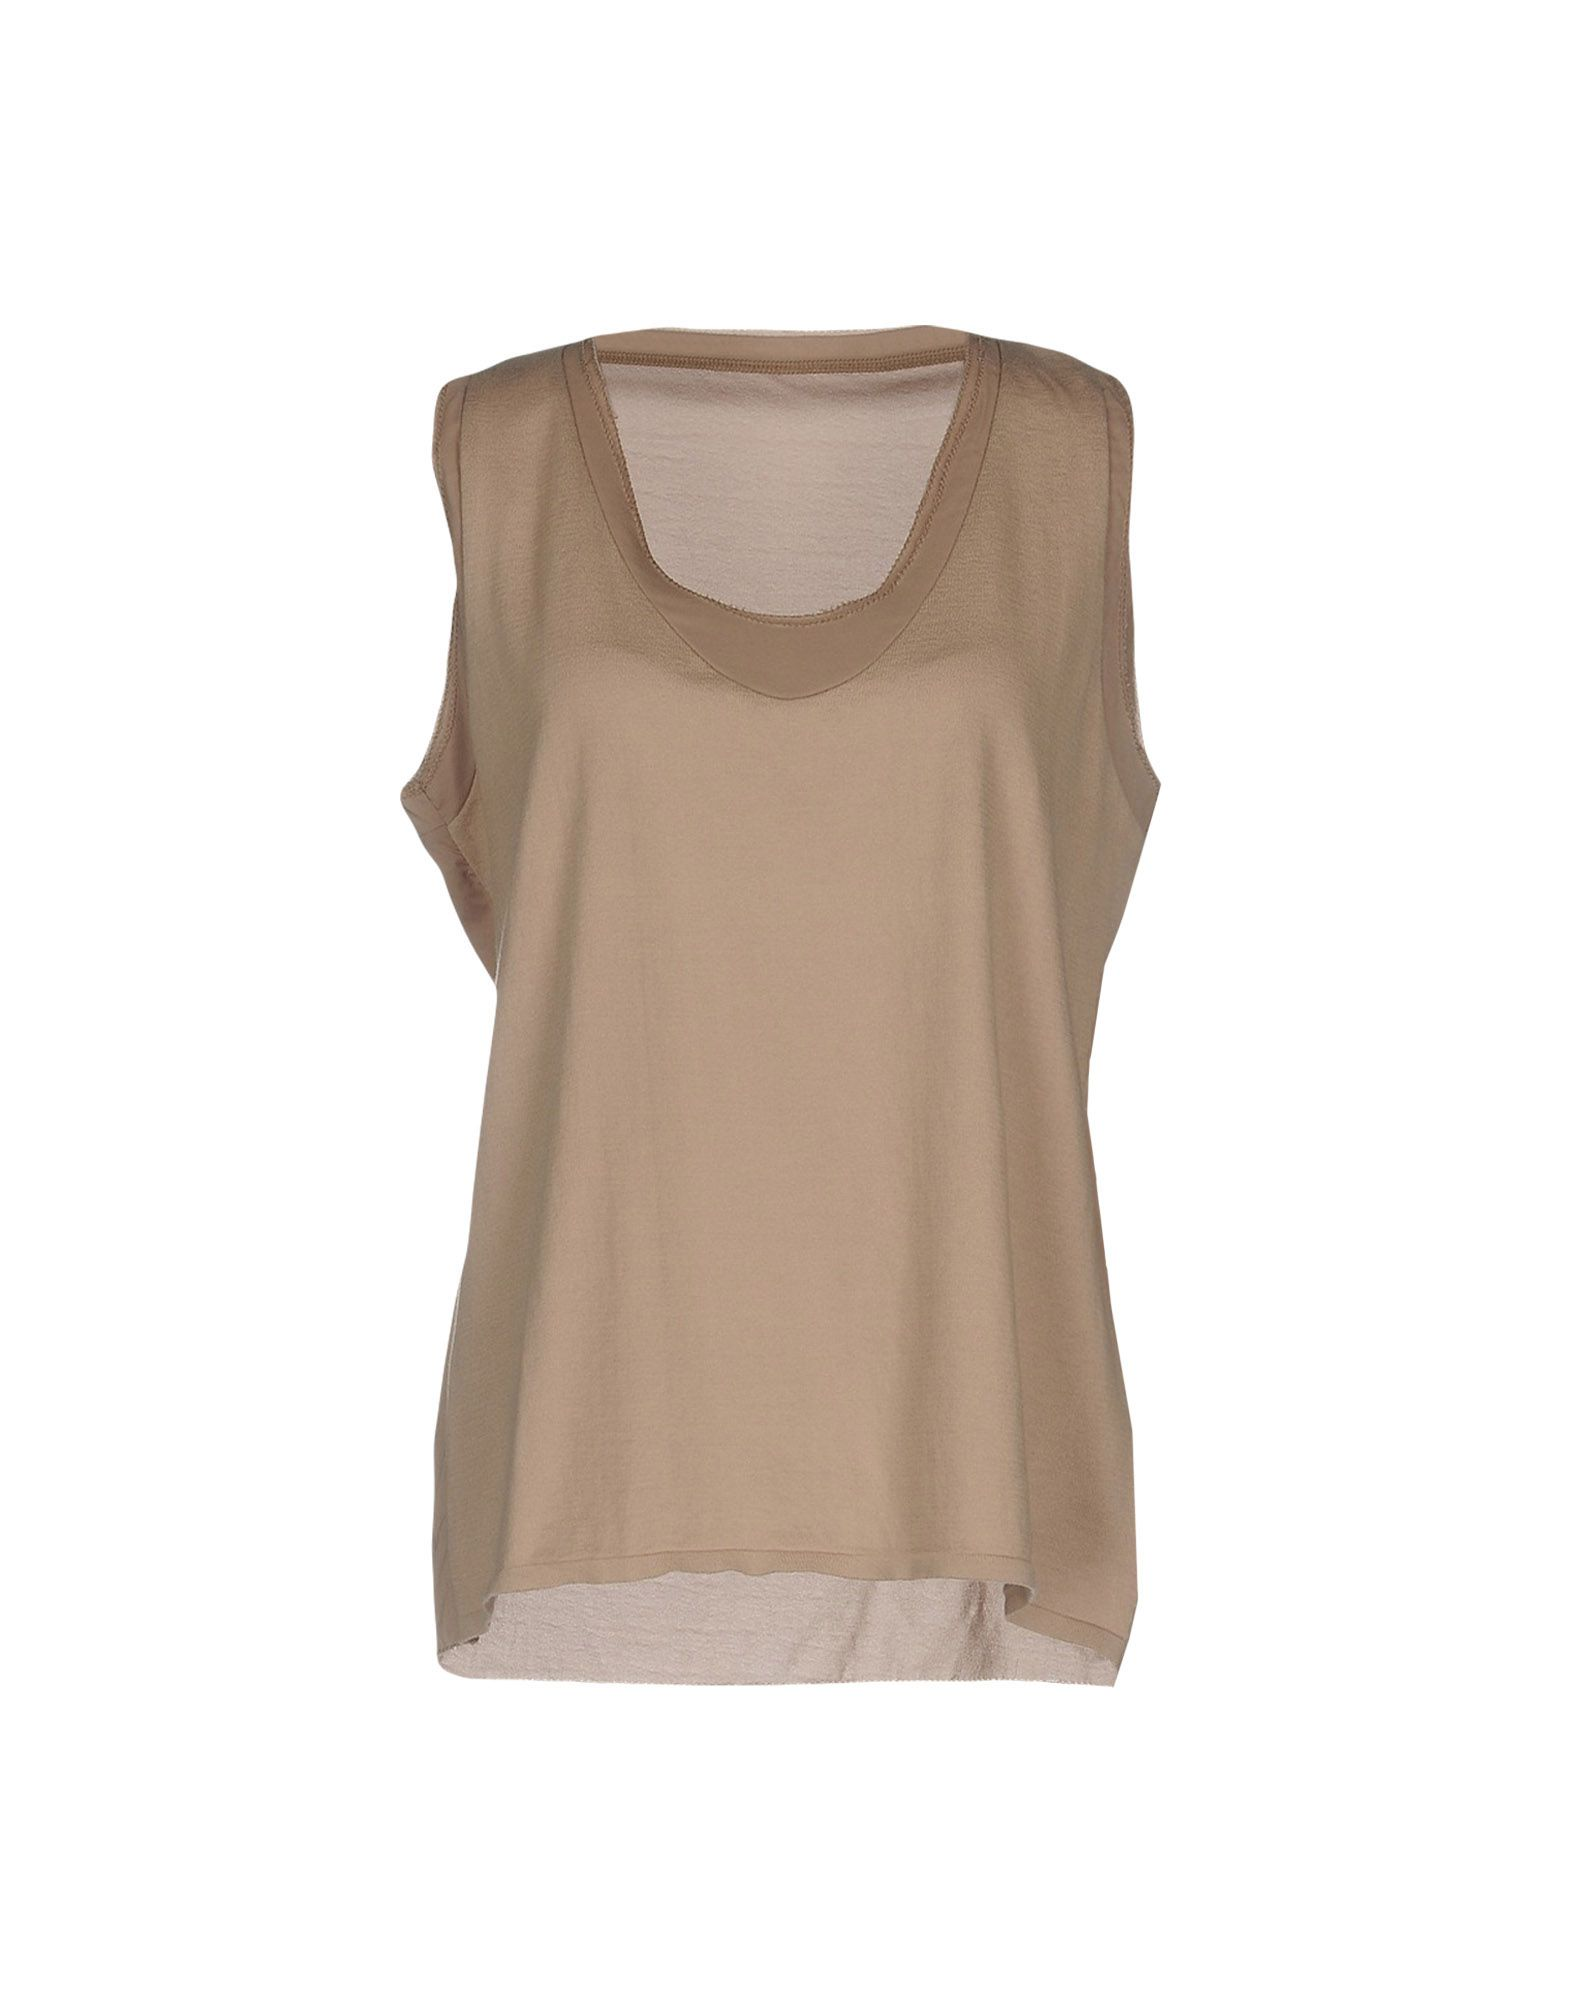 Top Anneclaire Donna - Acquista online su AyRbyHX5